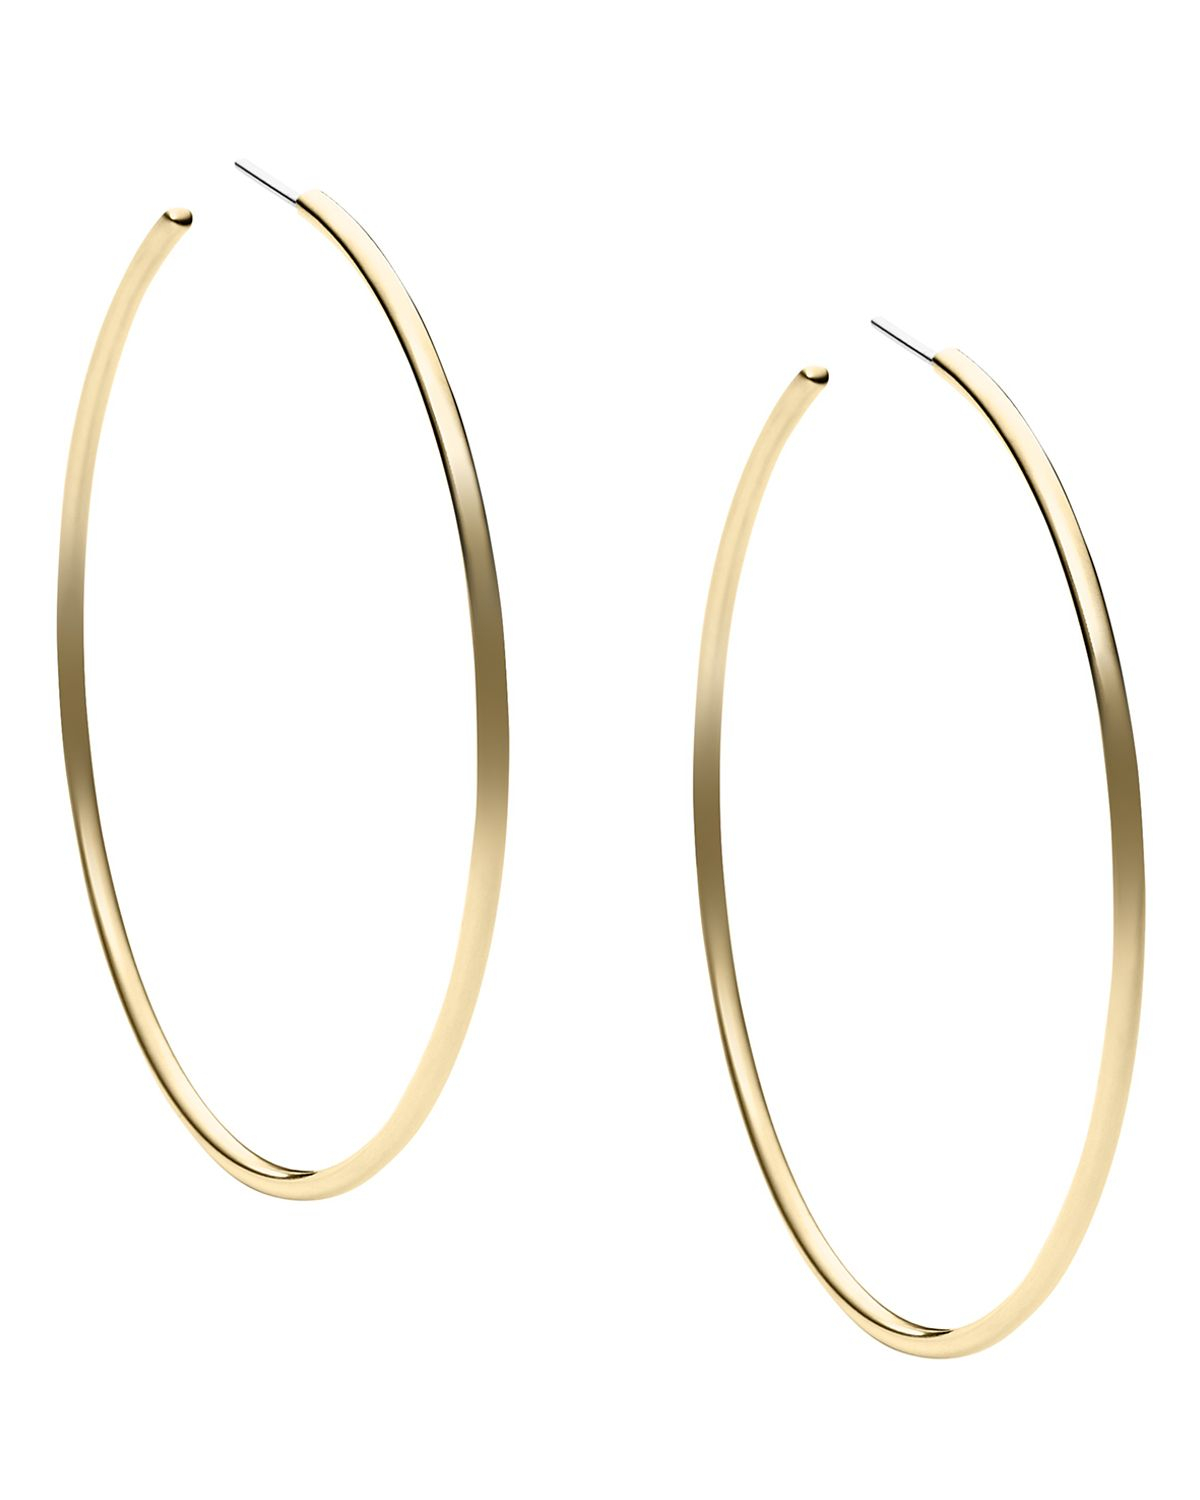 michael kors gold hoop earrings michael kors hoop earrings in gold lyst 2659